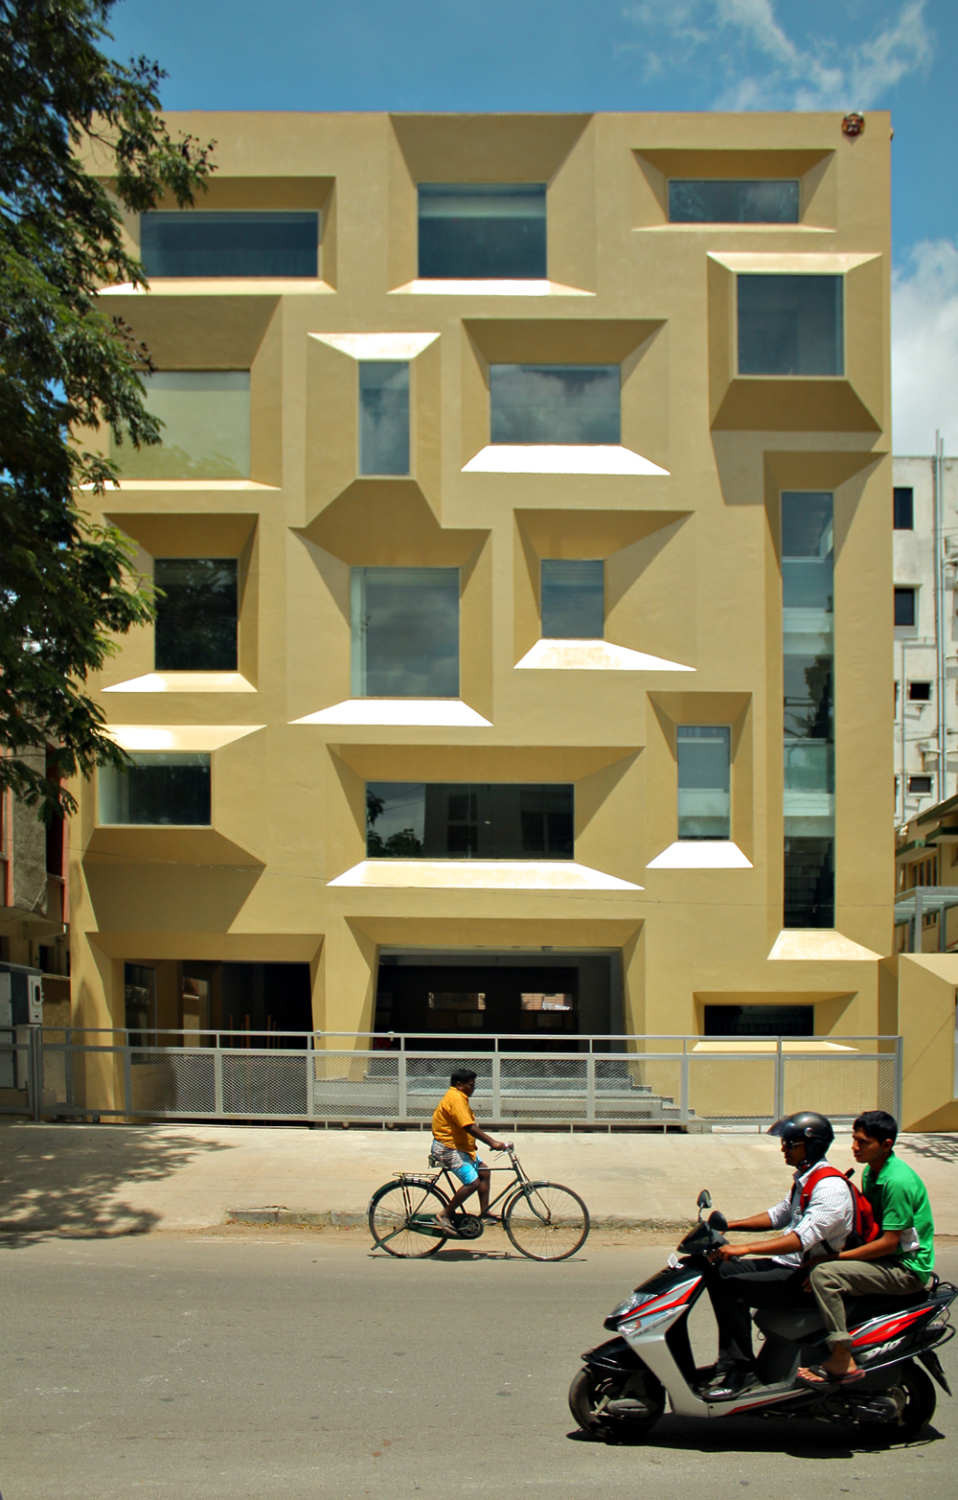 Jewel Box In Bangalore / SDeG, Courtesy of SDeG